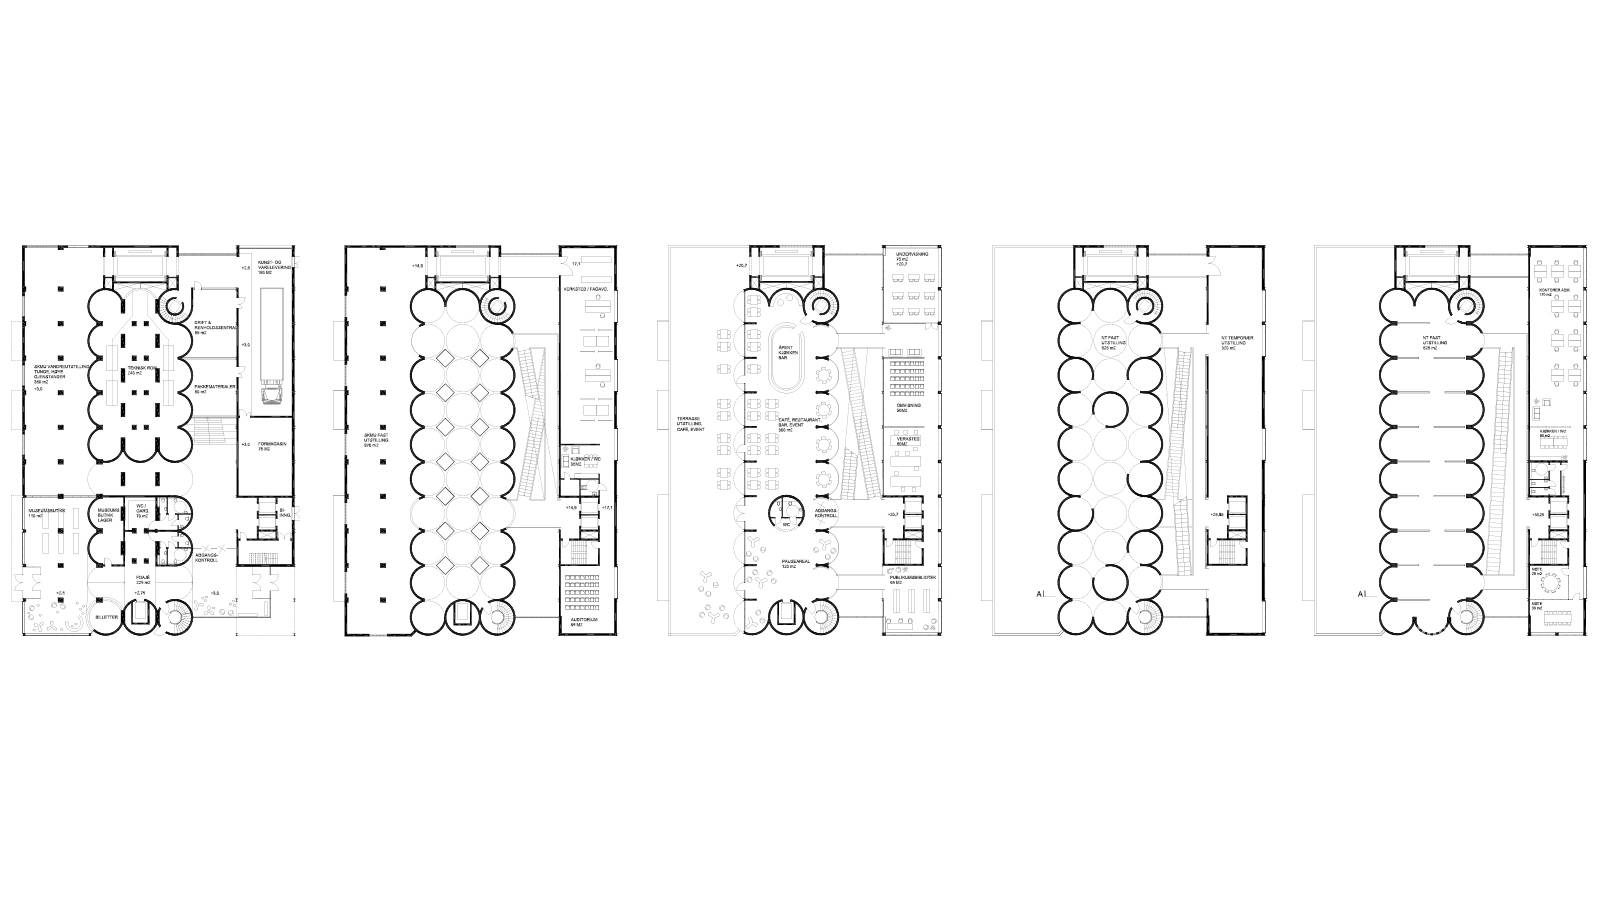 FLOOR PLAN 1, 2, 4, 5 AND 7 - Kunstsilo - SPOL Architects